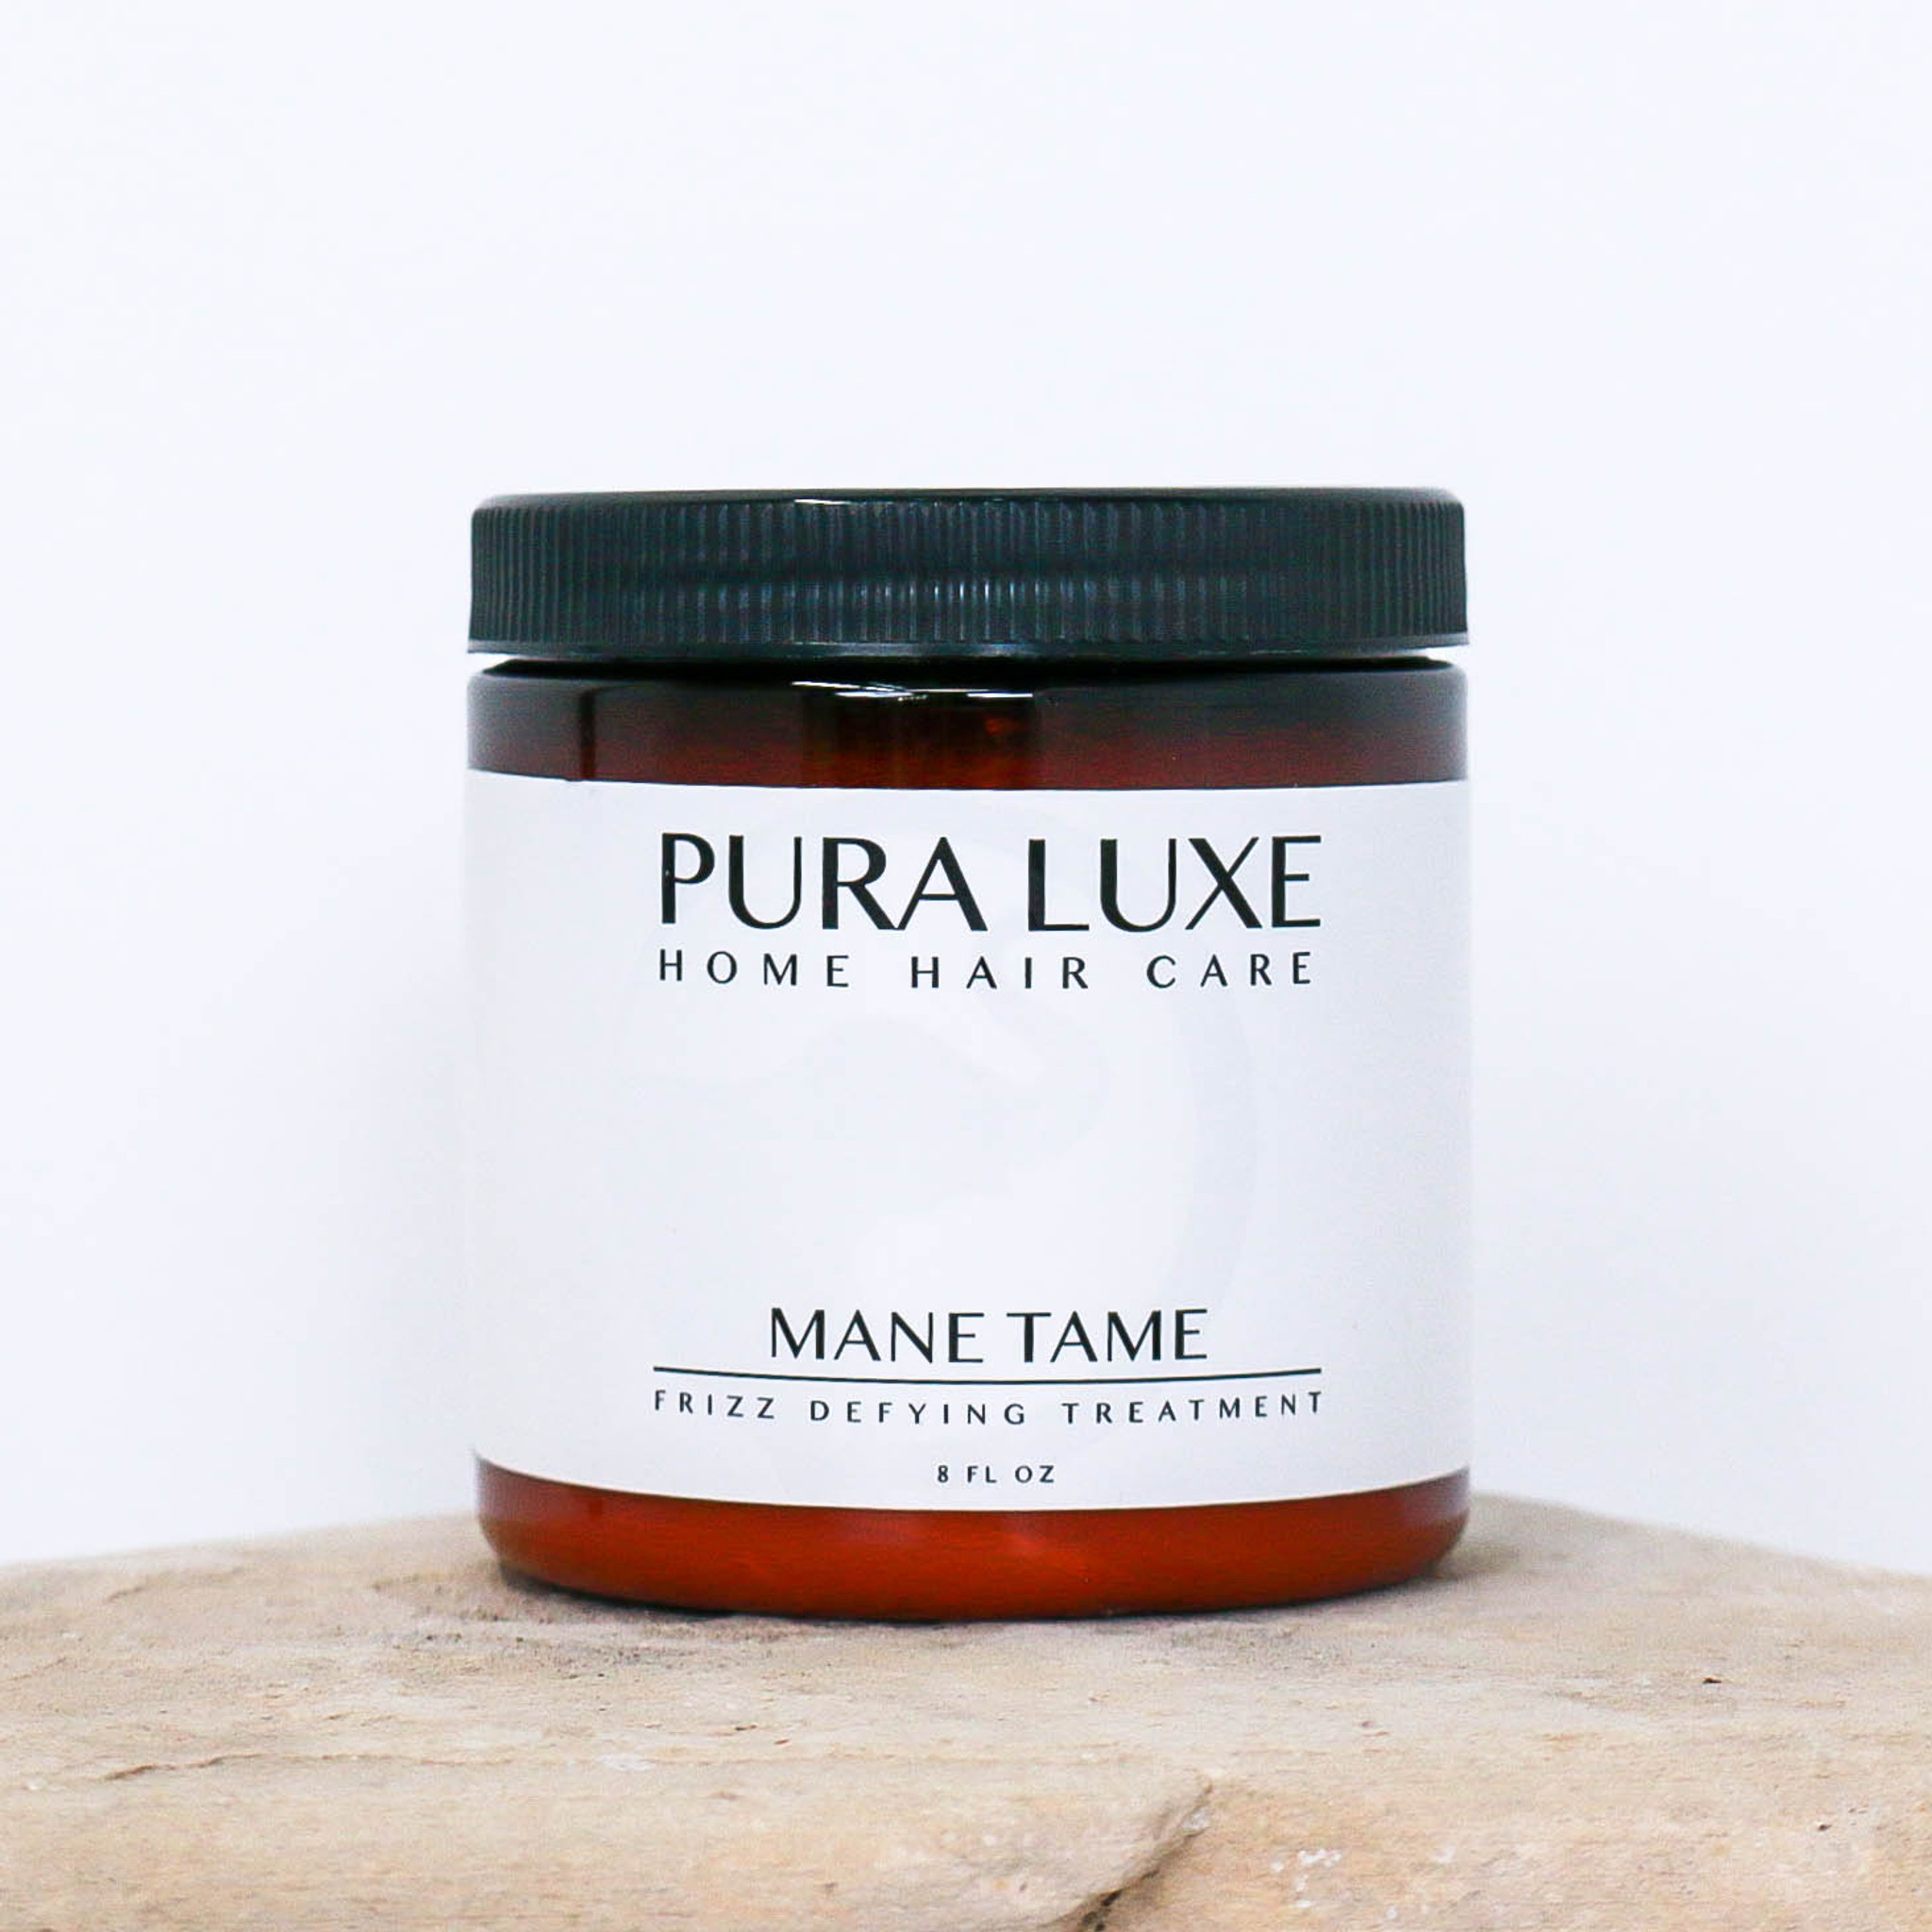 MANE TAME Frizz Defying Home Treatment